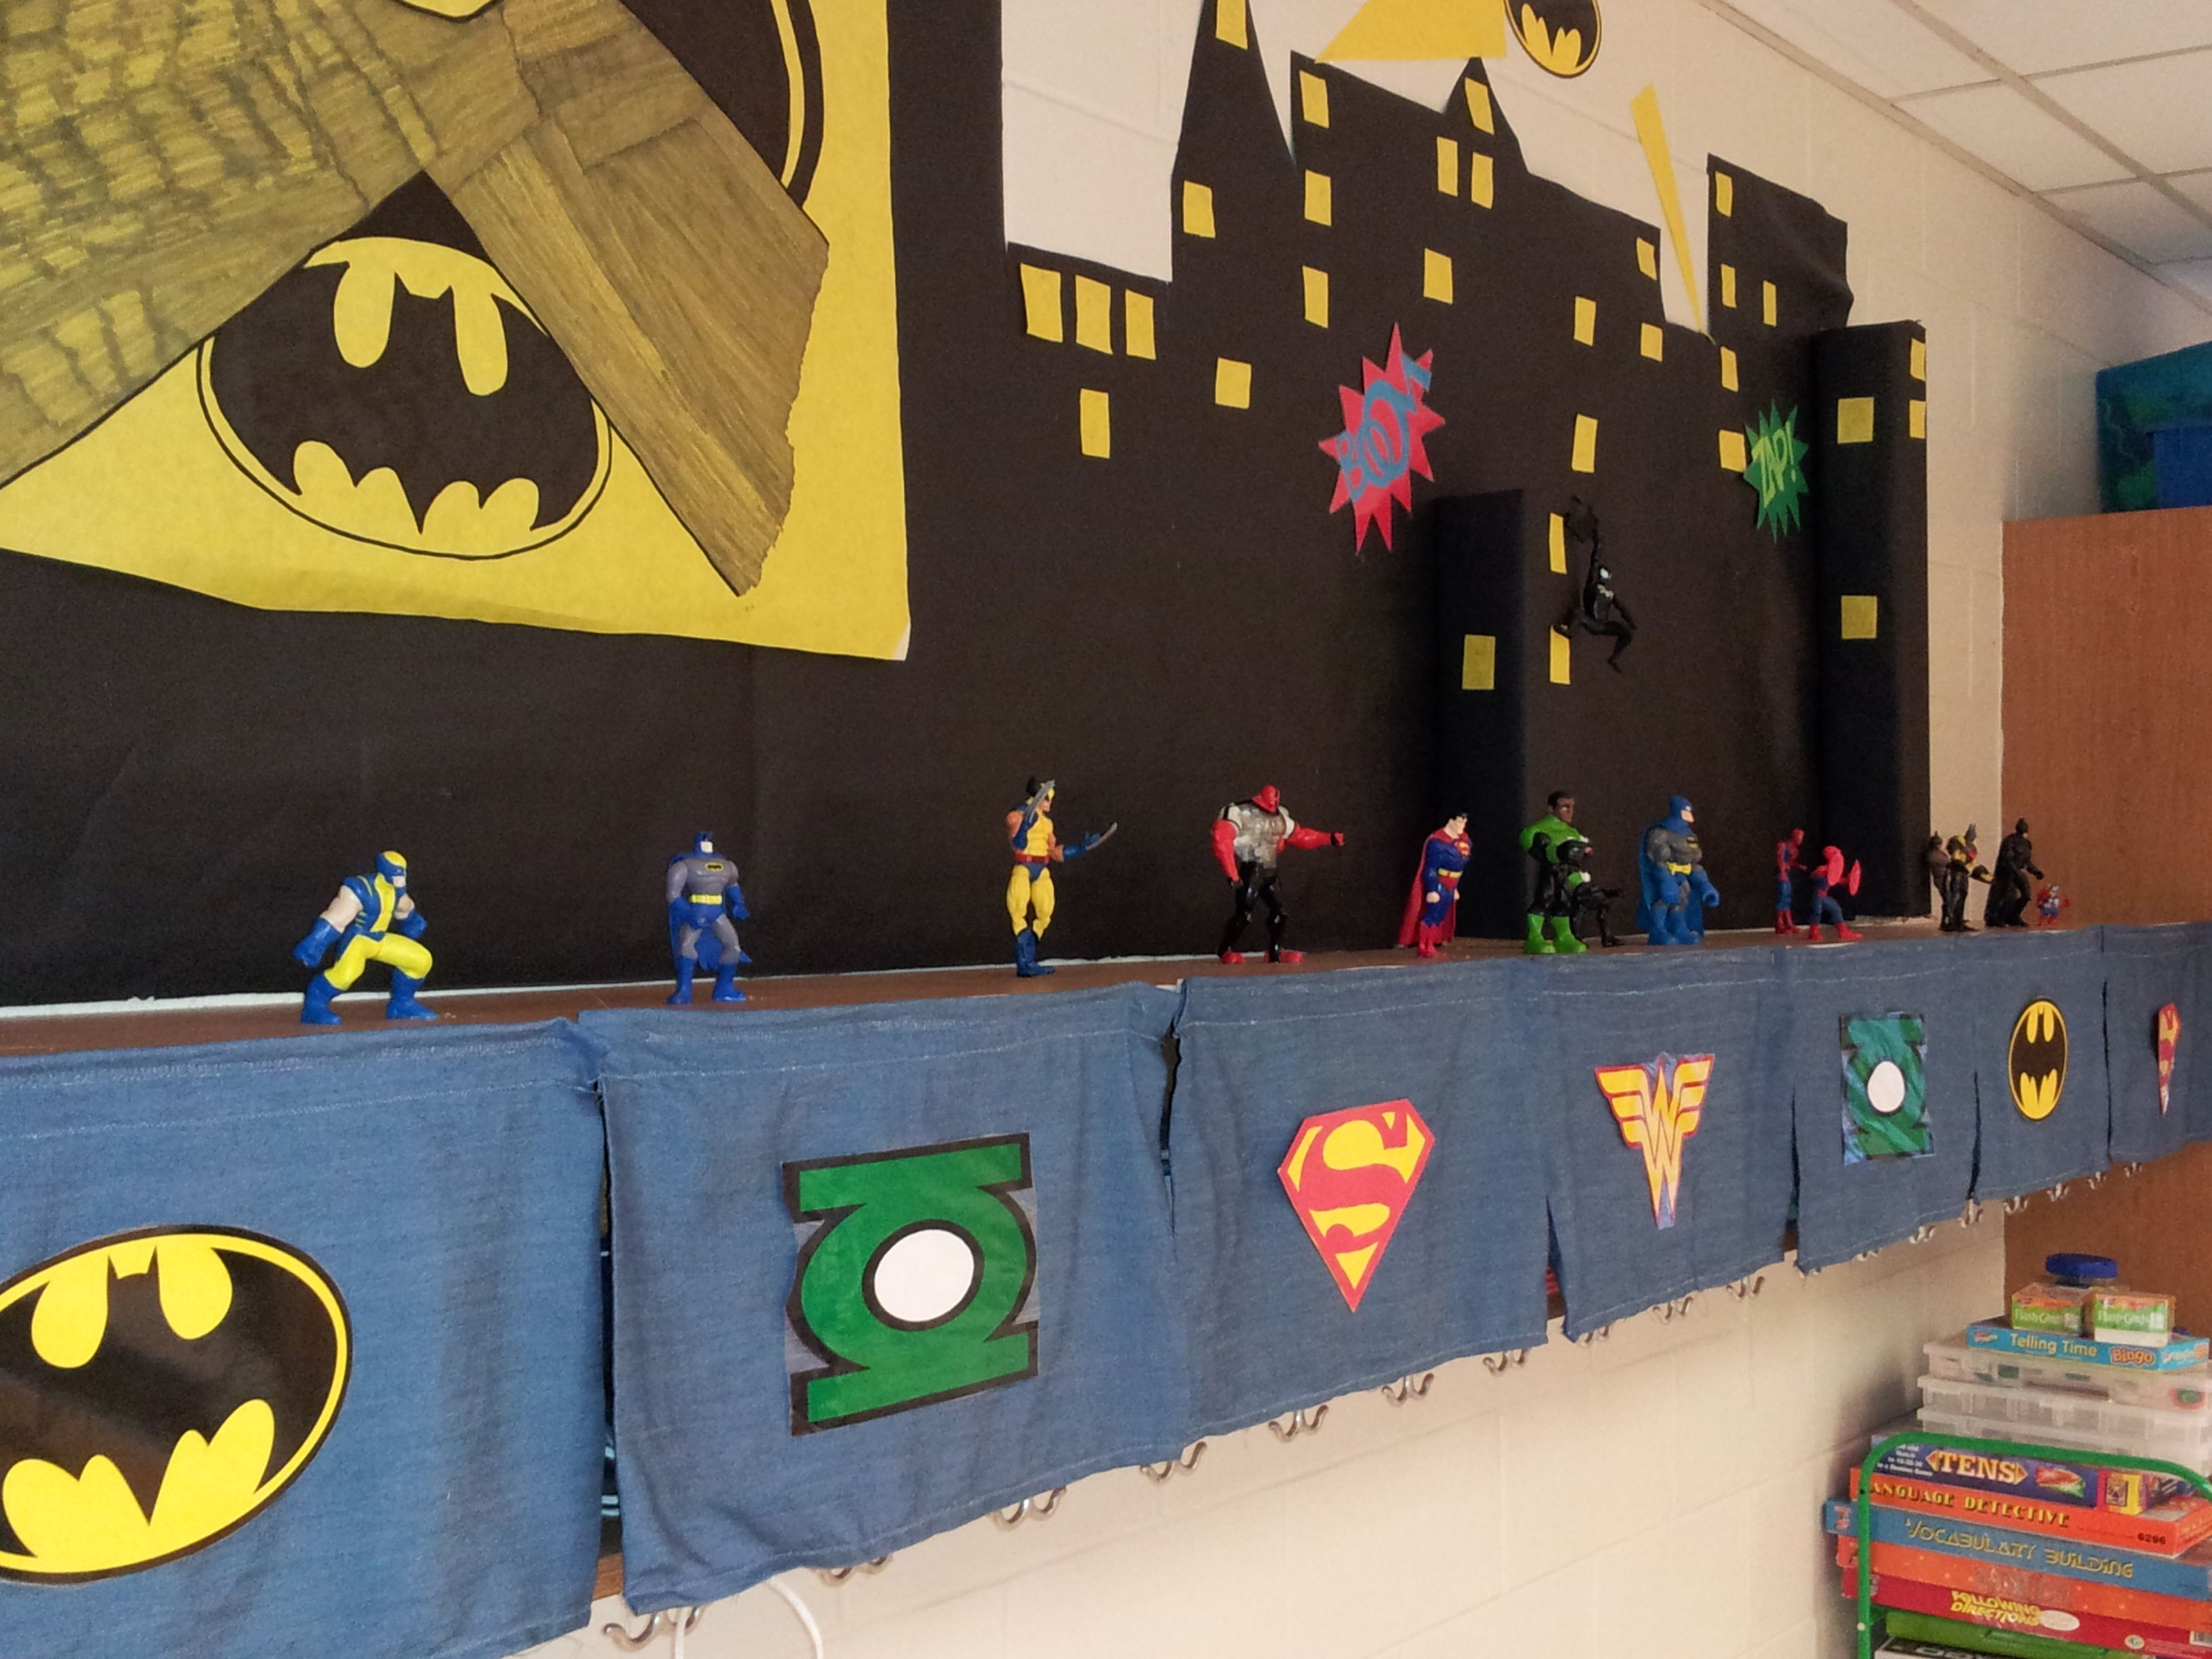 Superhero Classroom Decoration Ideas ~ Superhero classroom ideas got to have our friendly